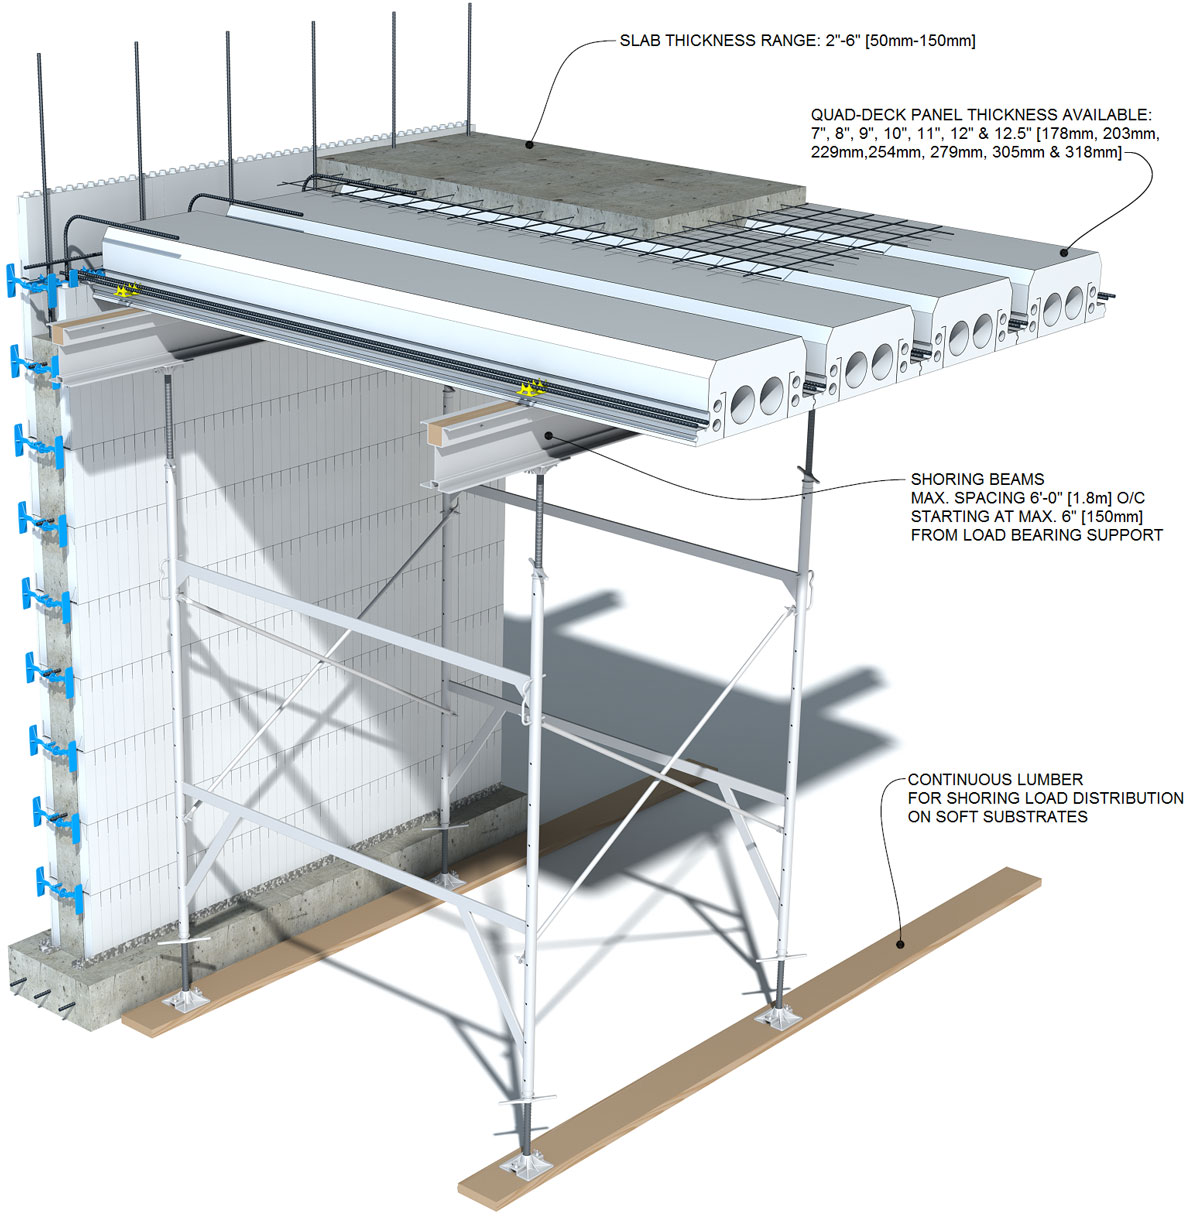 Alternate ceiling to concrete ar15 com for Icf concrete roof